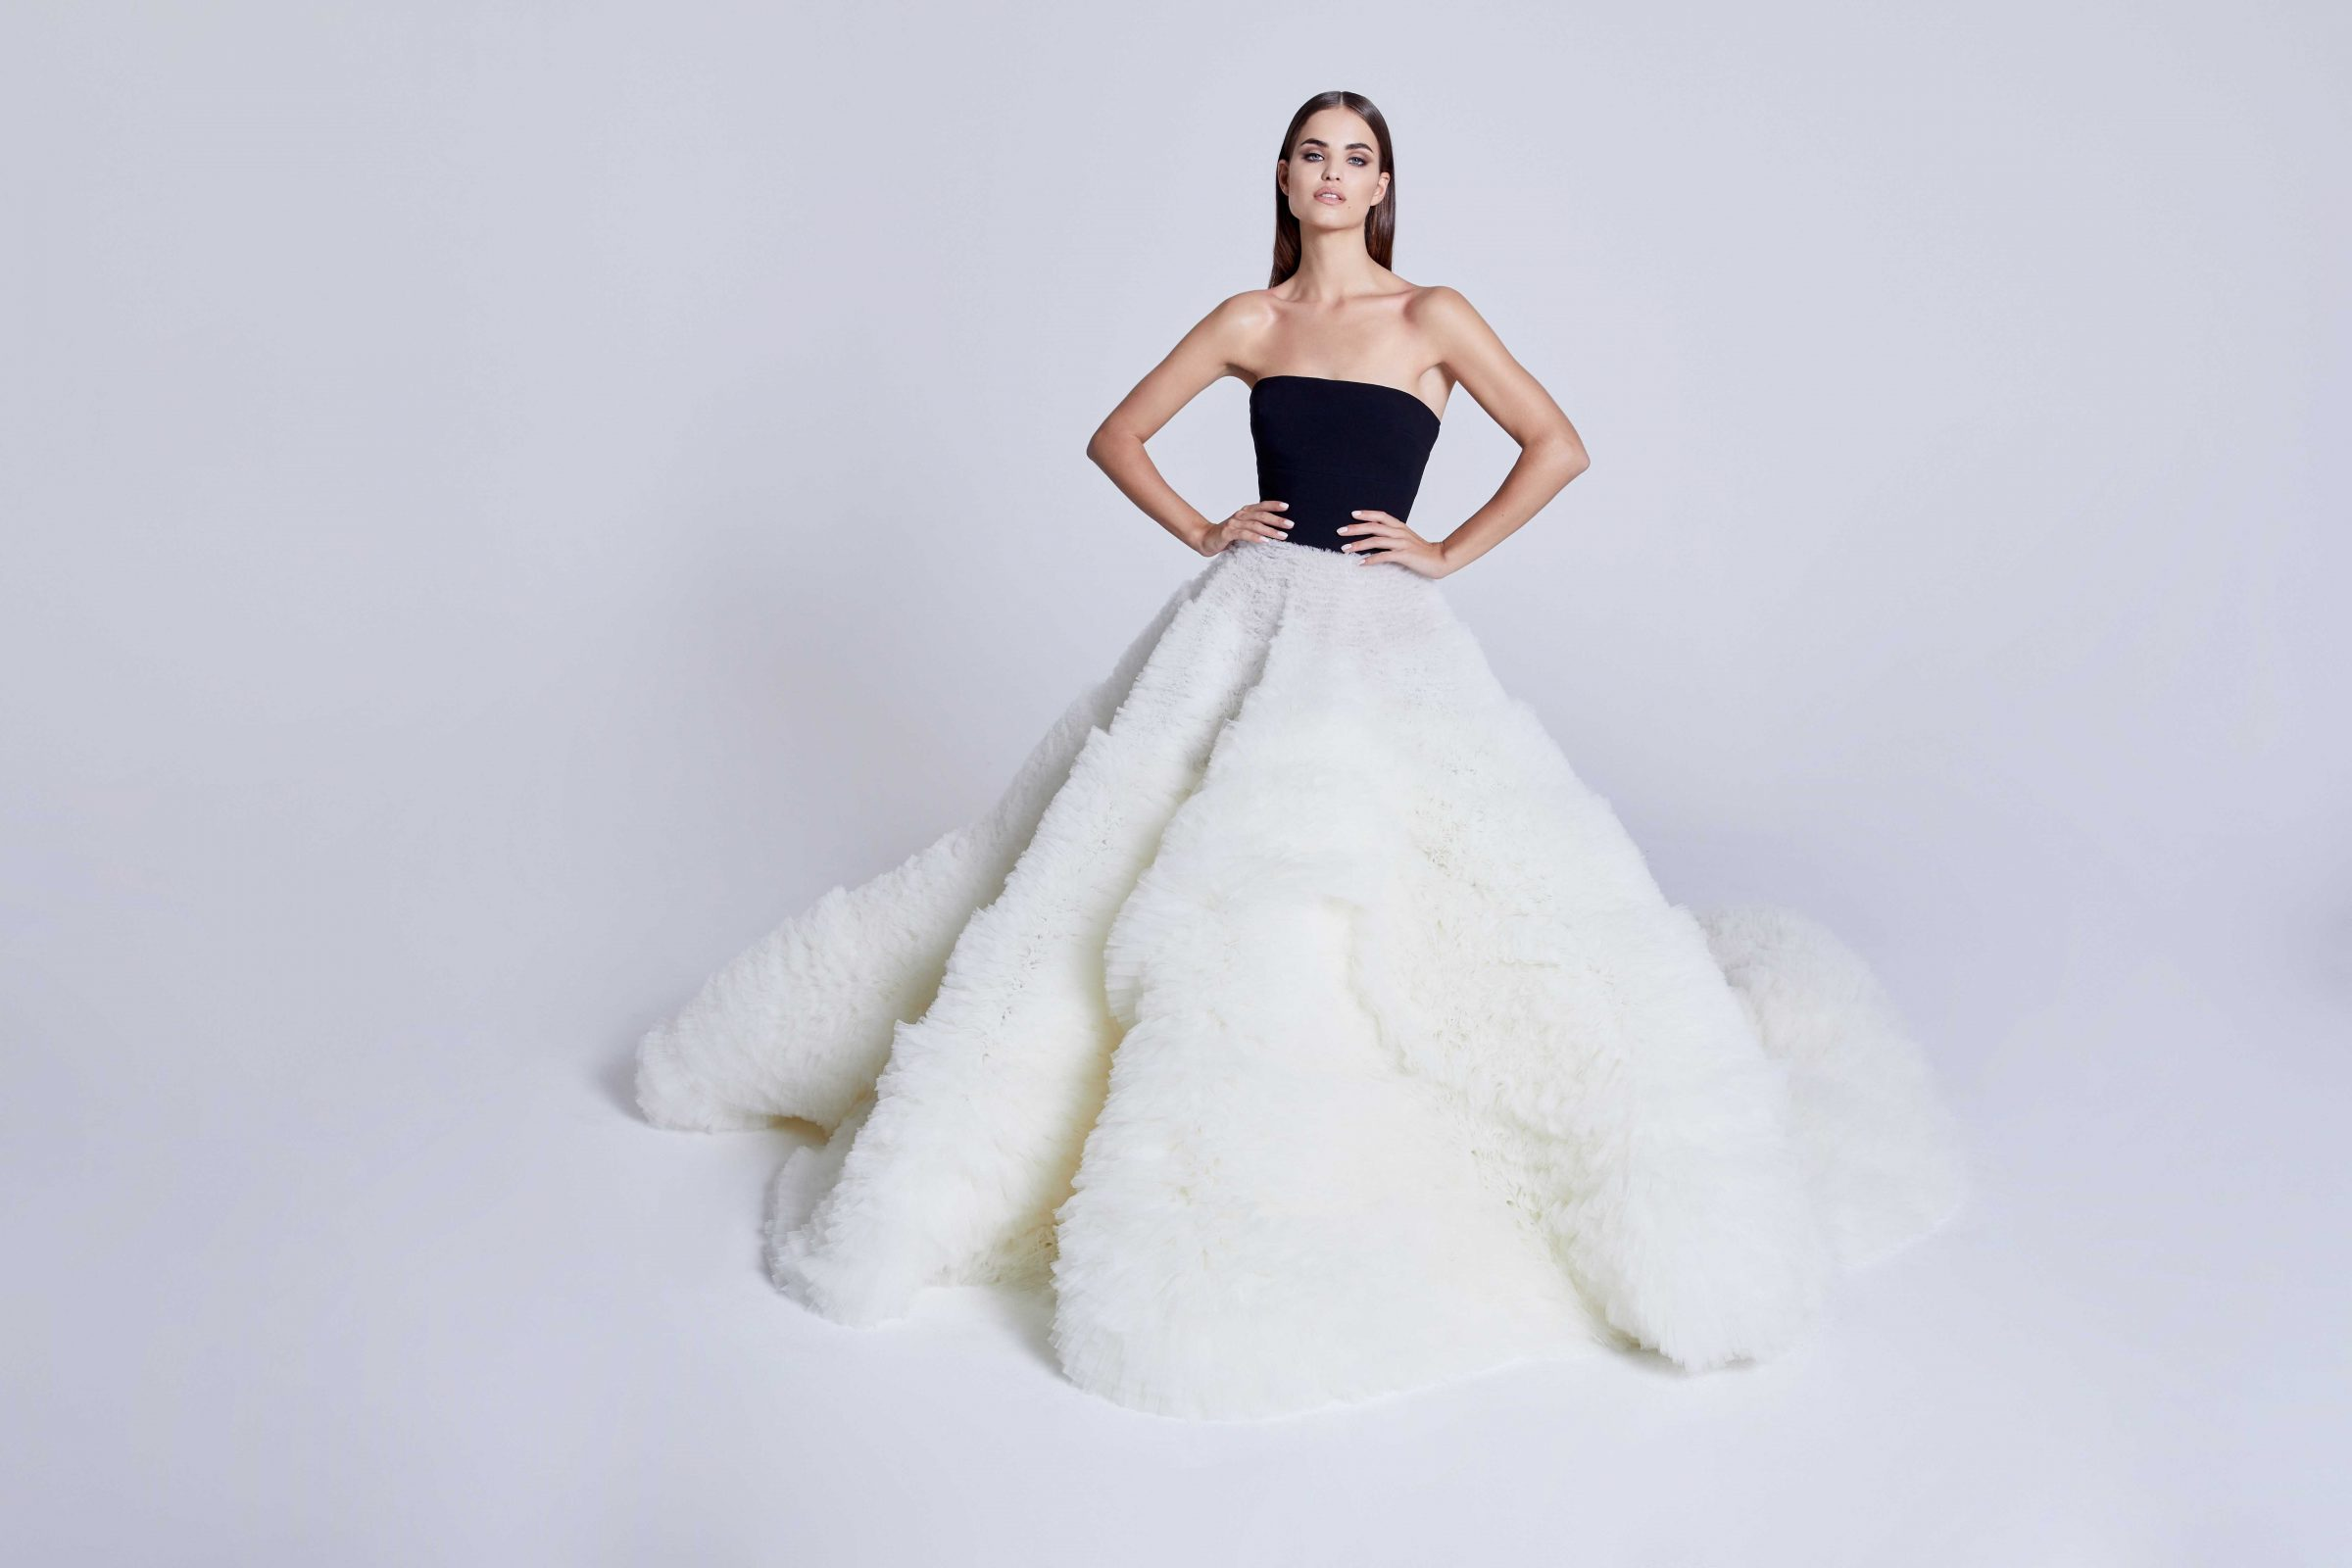 Ballgown wedding dress with black strapless top and flowing white bottom